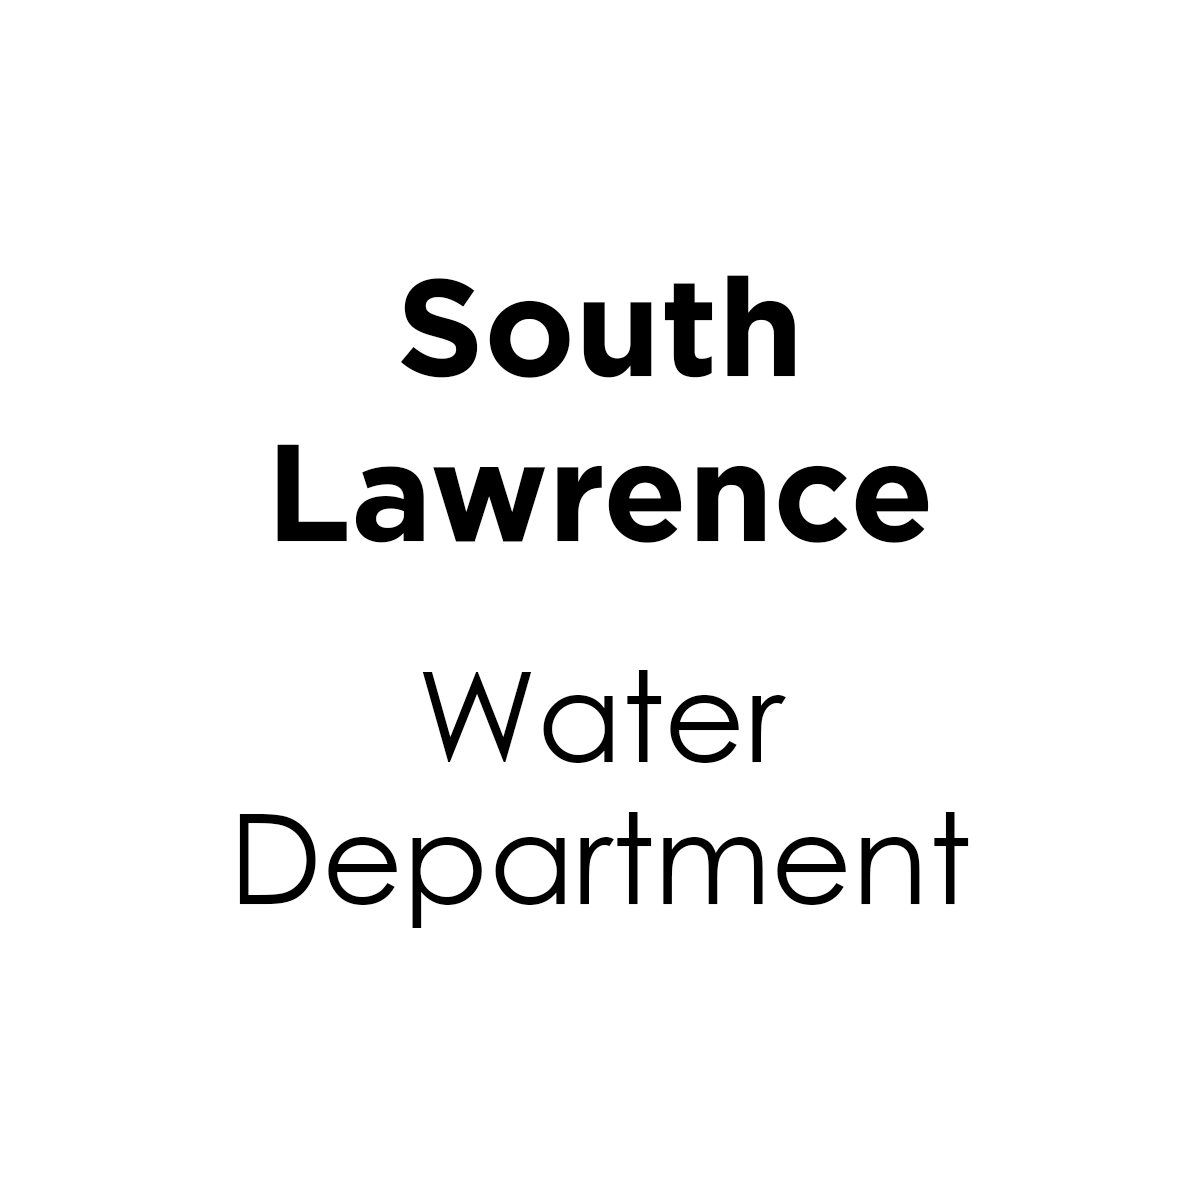 South Lawrence Water Department